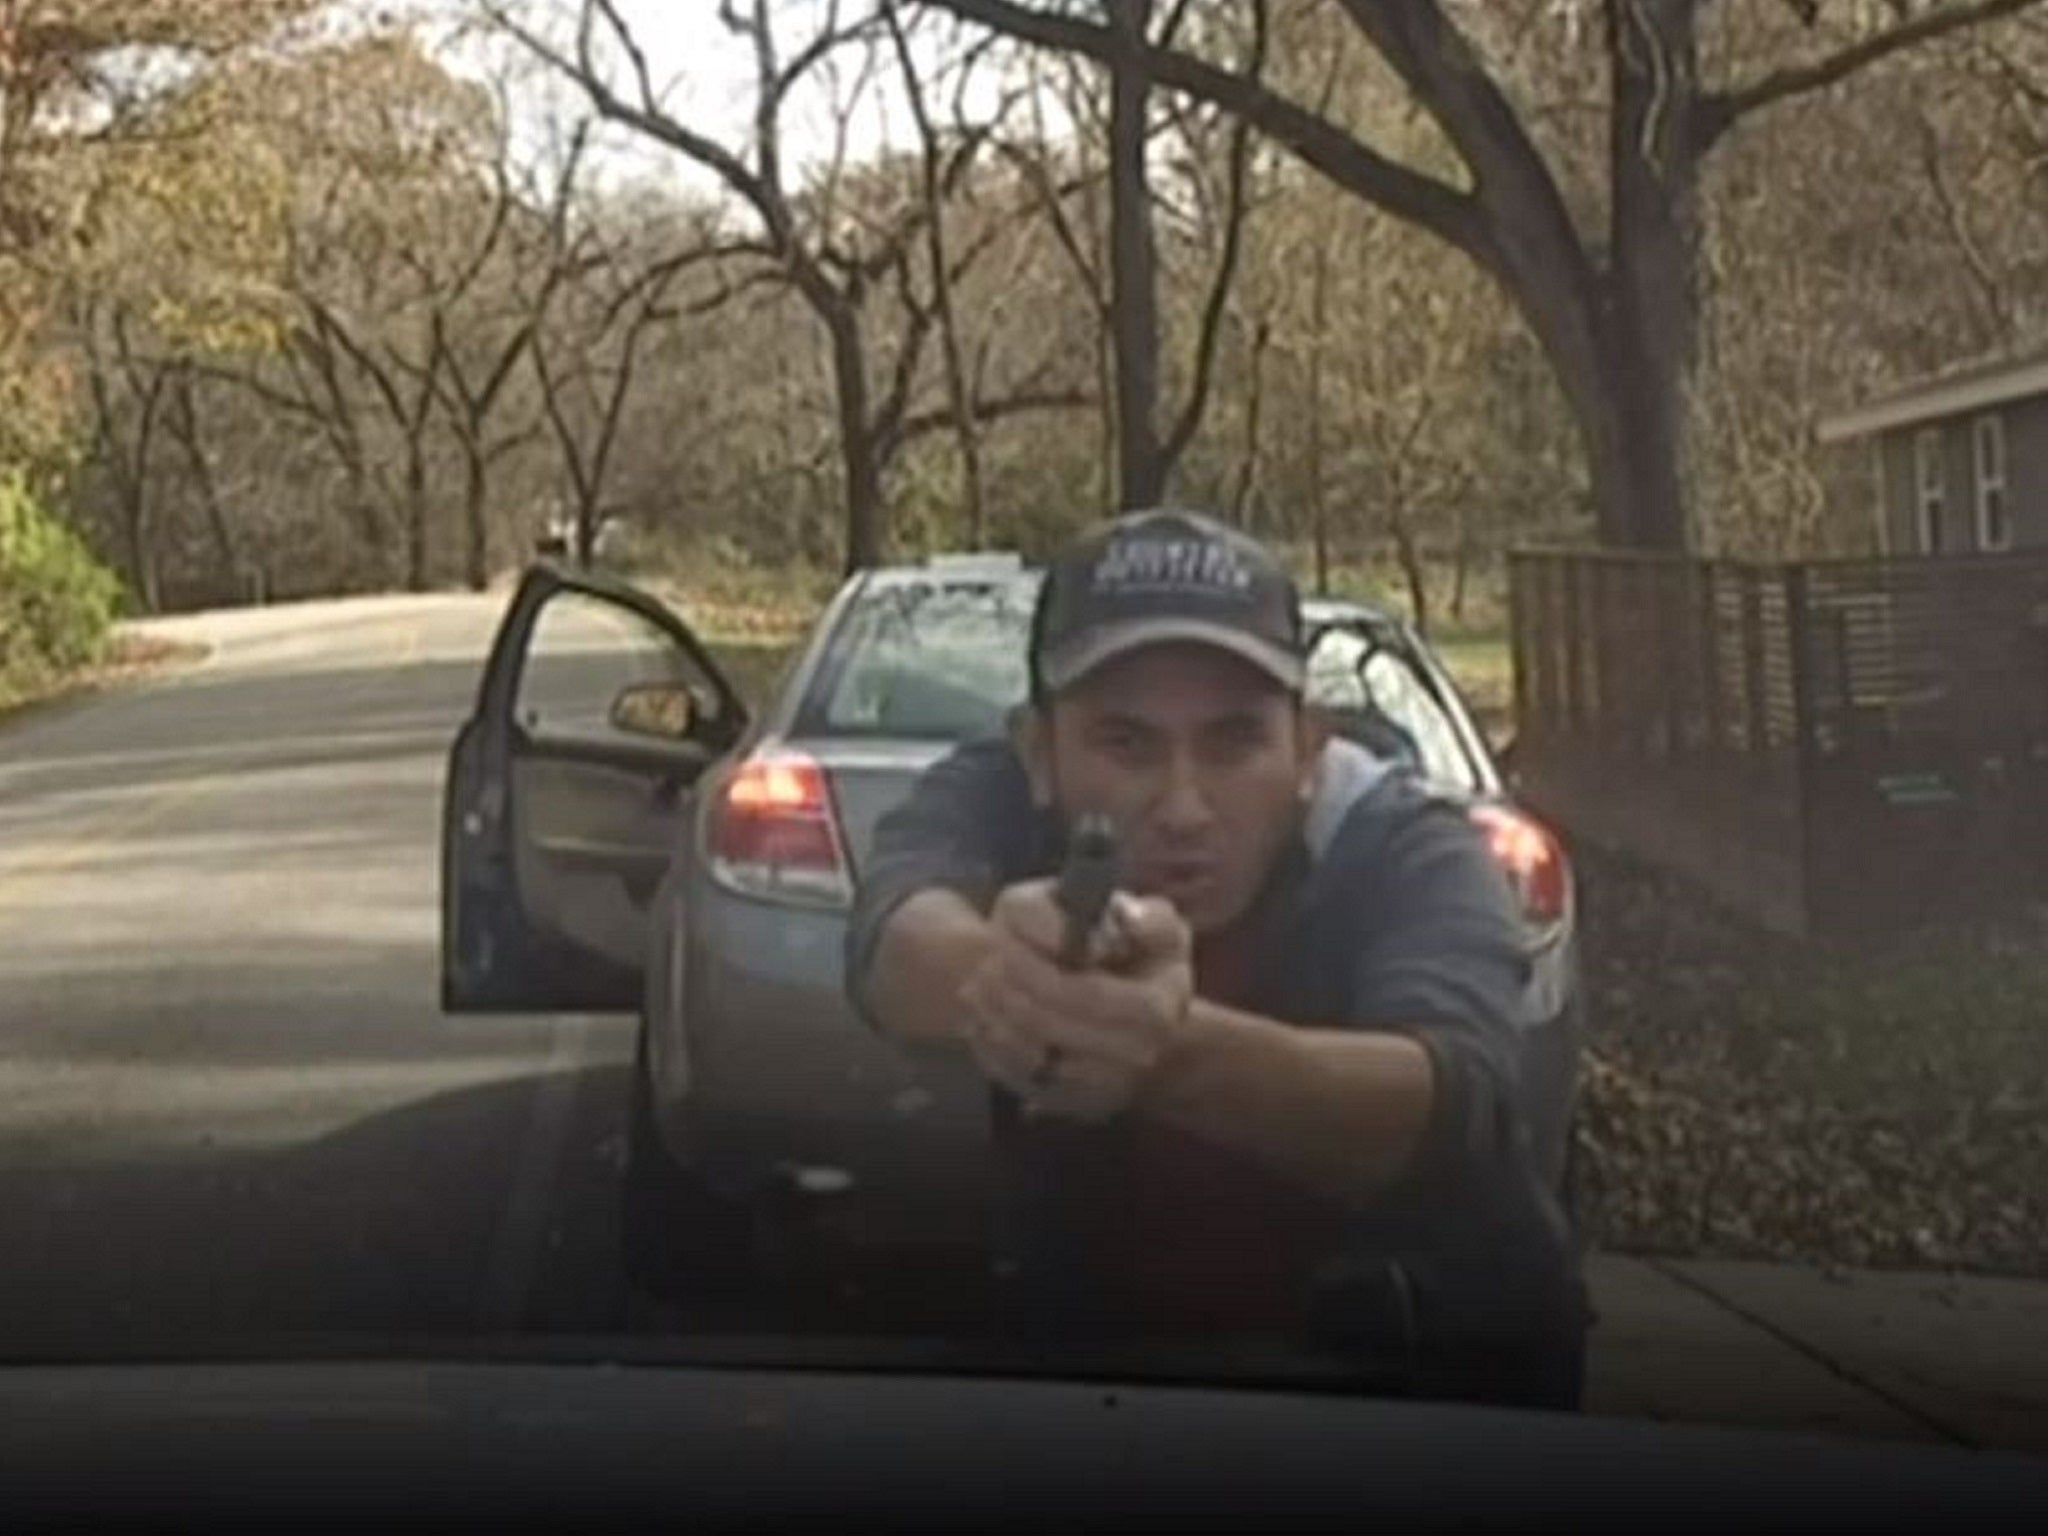 Dashcam captures moment armed driver opened fire on police officer who pulled him over